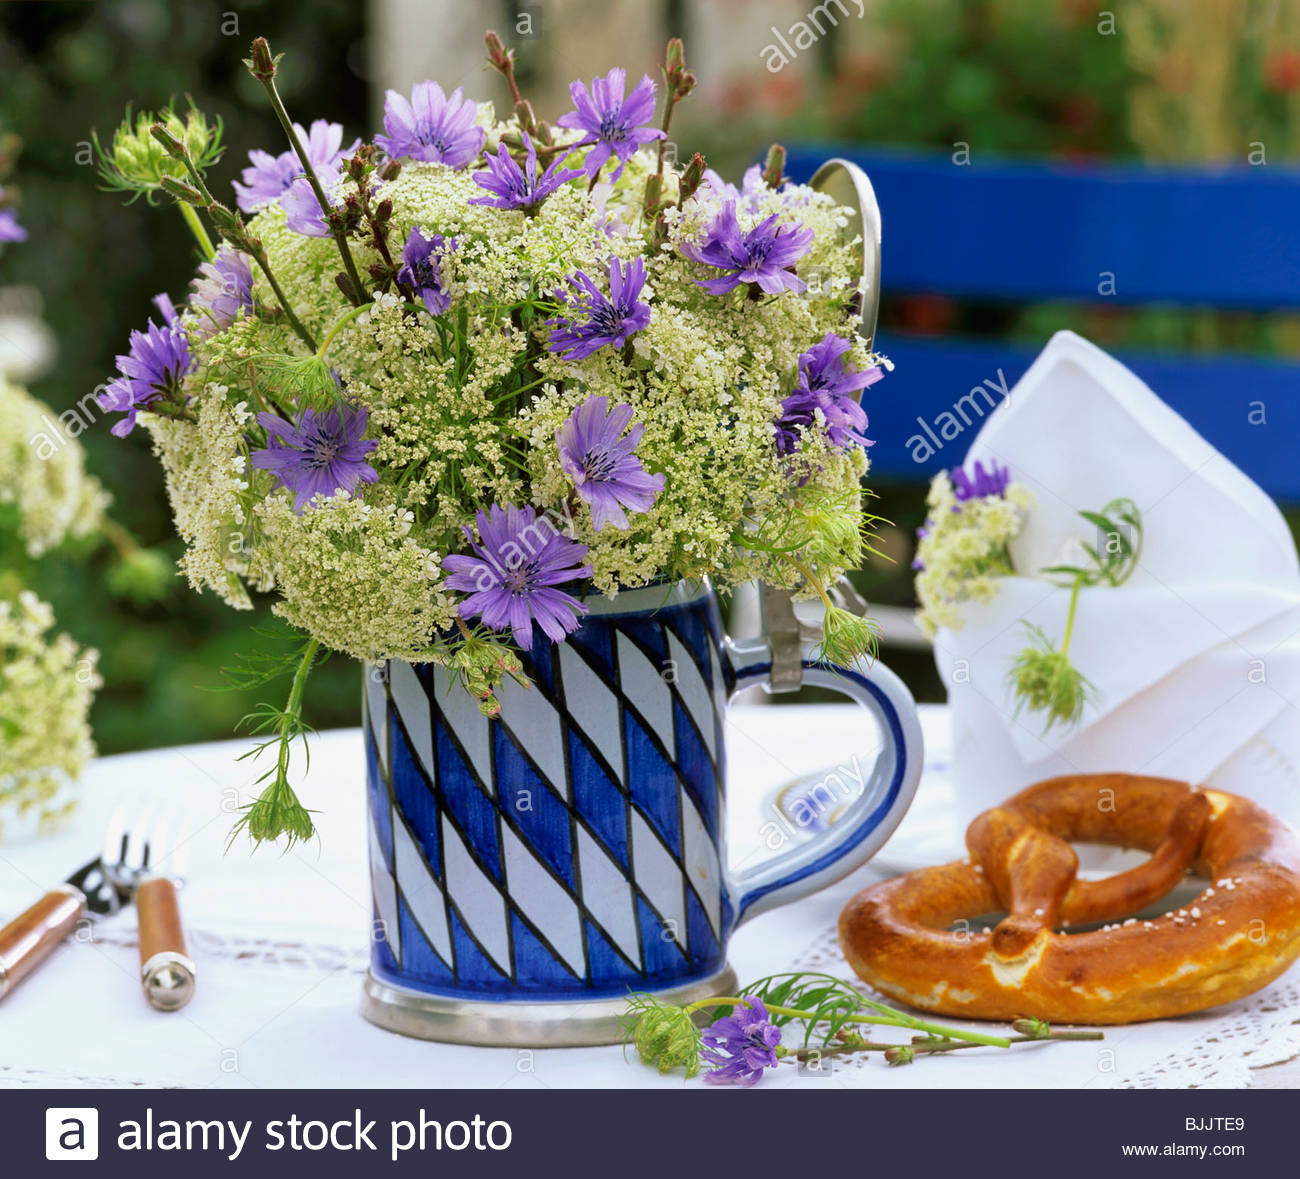 Beer Stein Pretzel Stock Photos & Beer Stein Pretzel Stock Images ...